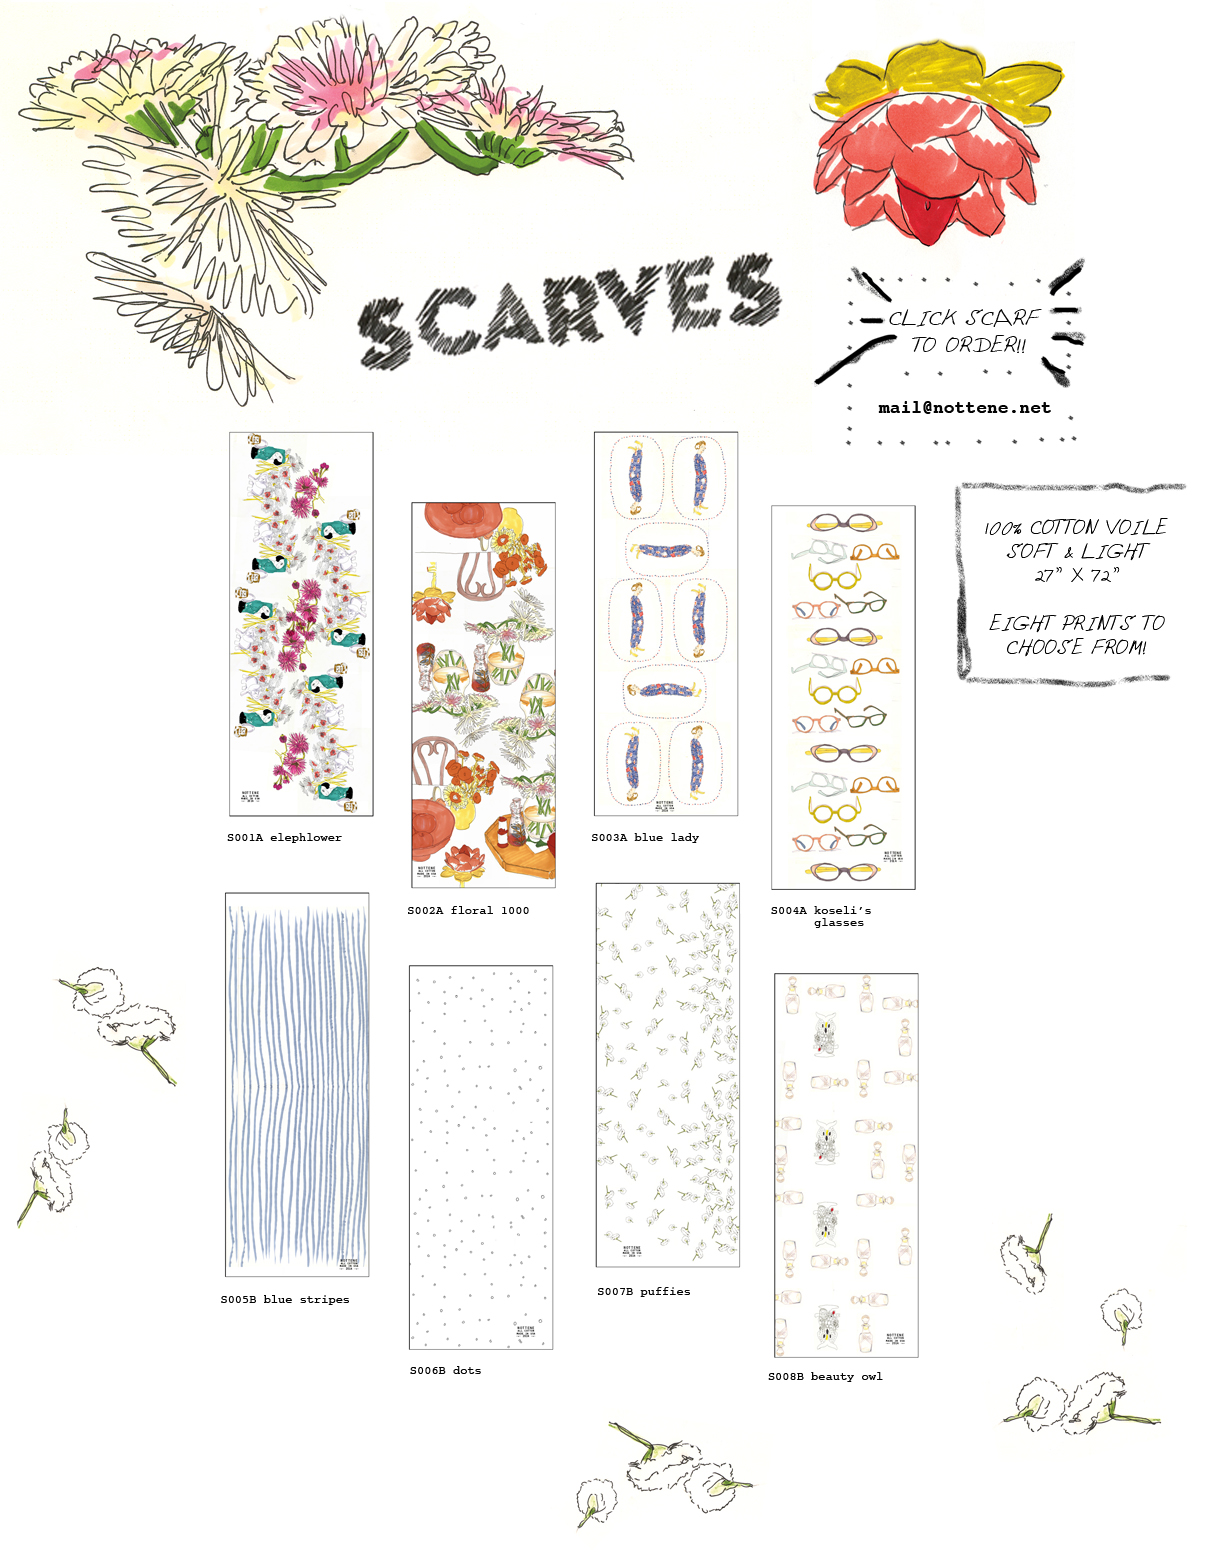 Click the image to see all the scarves in detail!